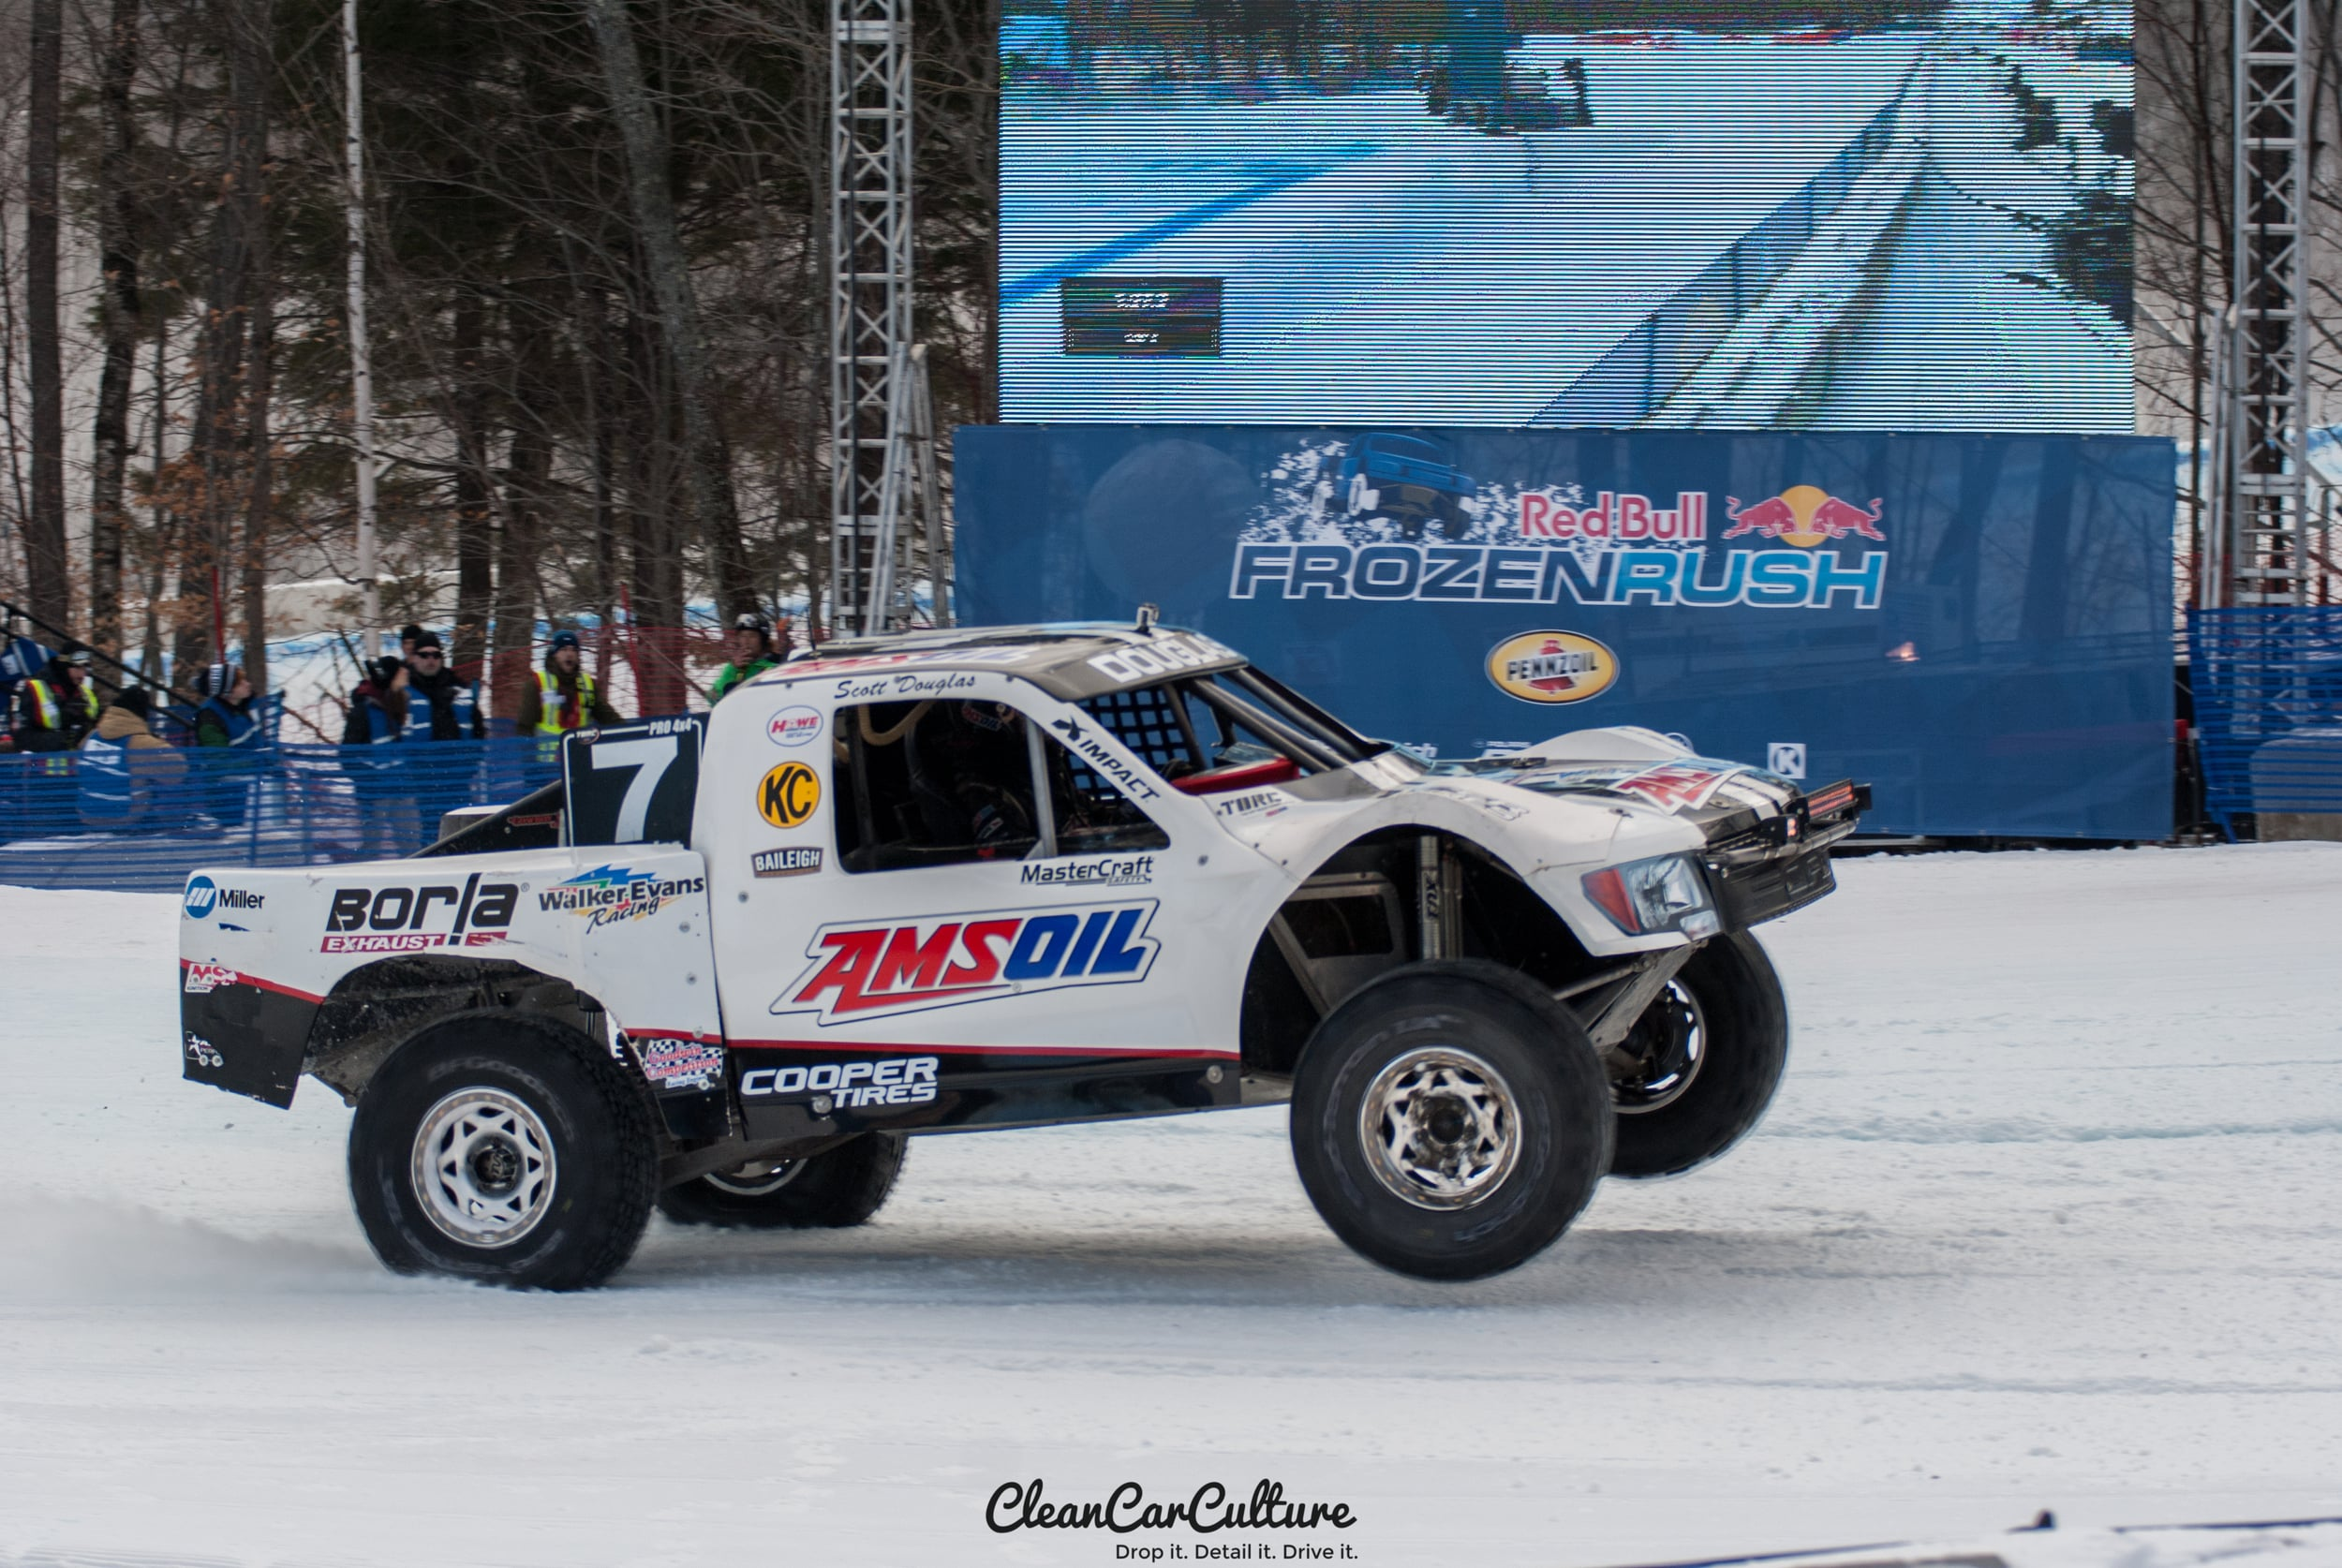 FrozenRush2016-2-4.jpg